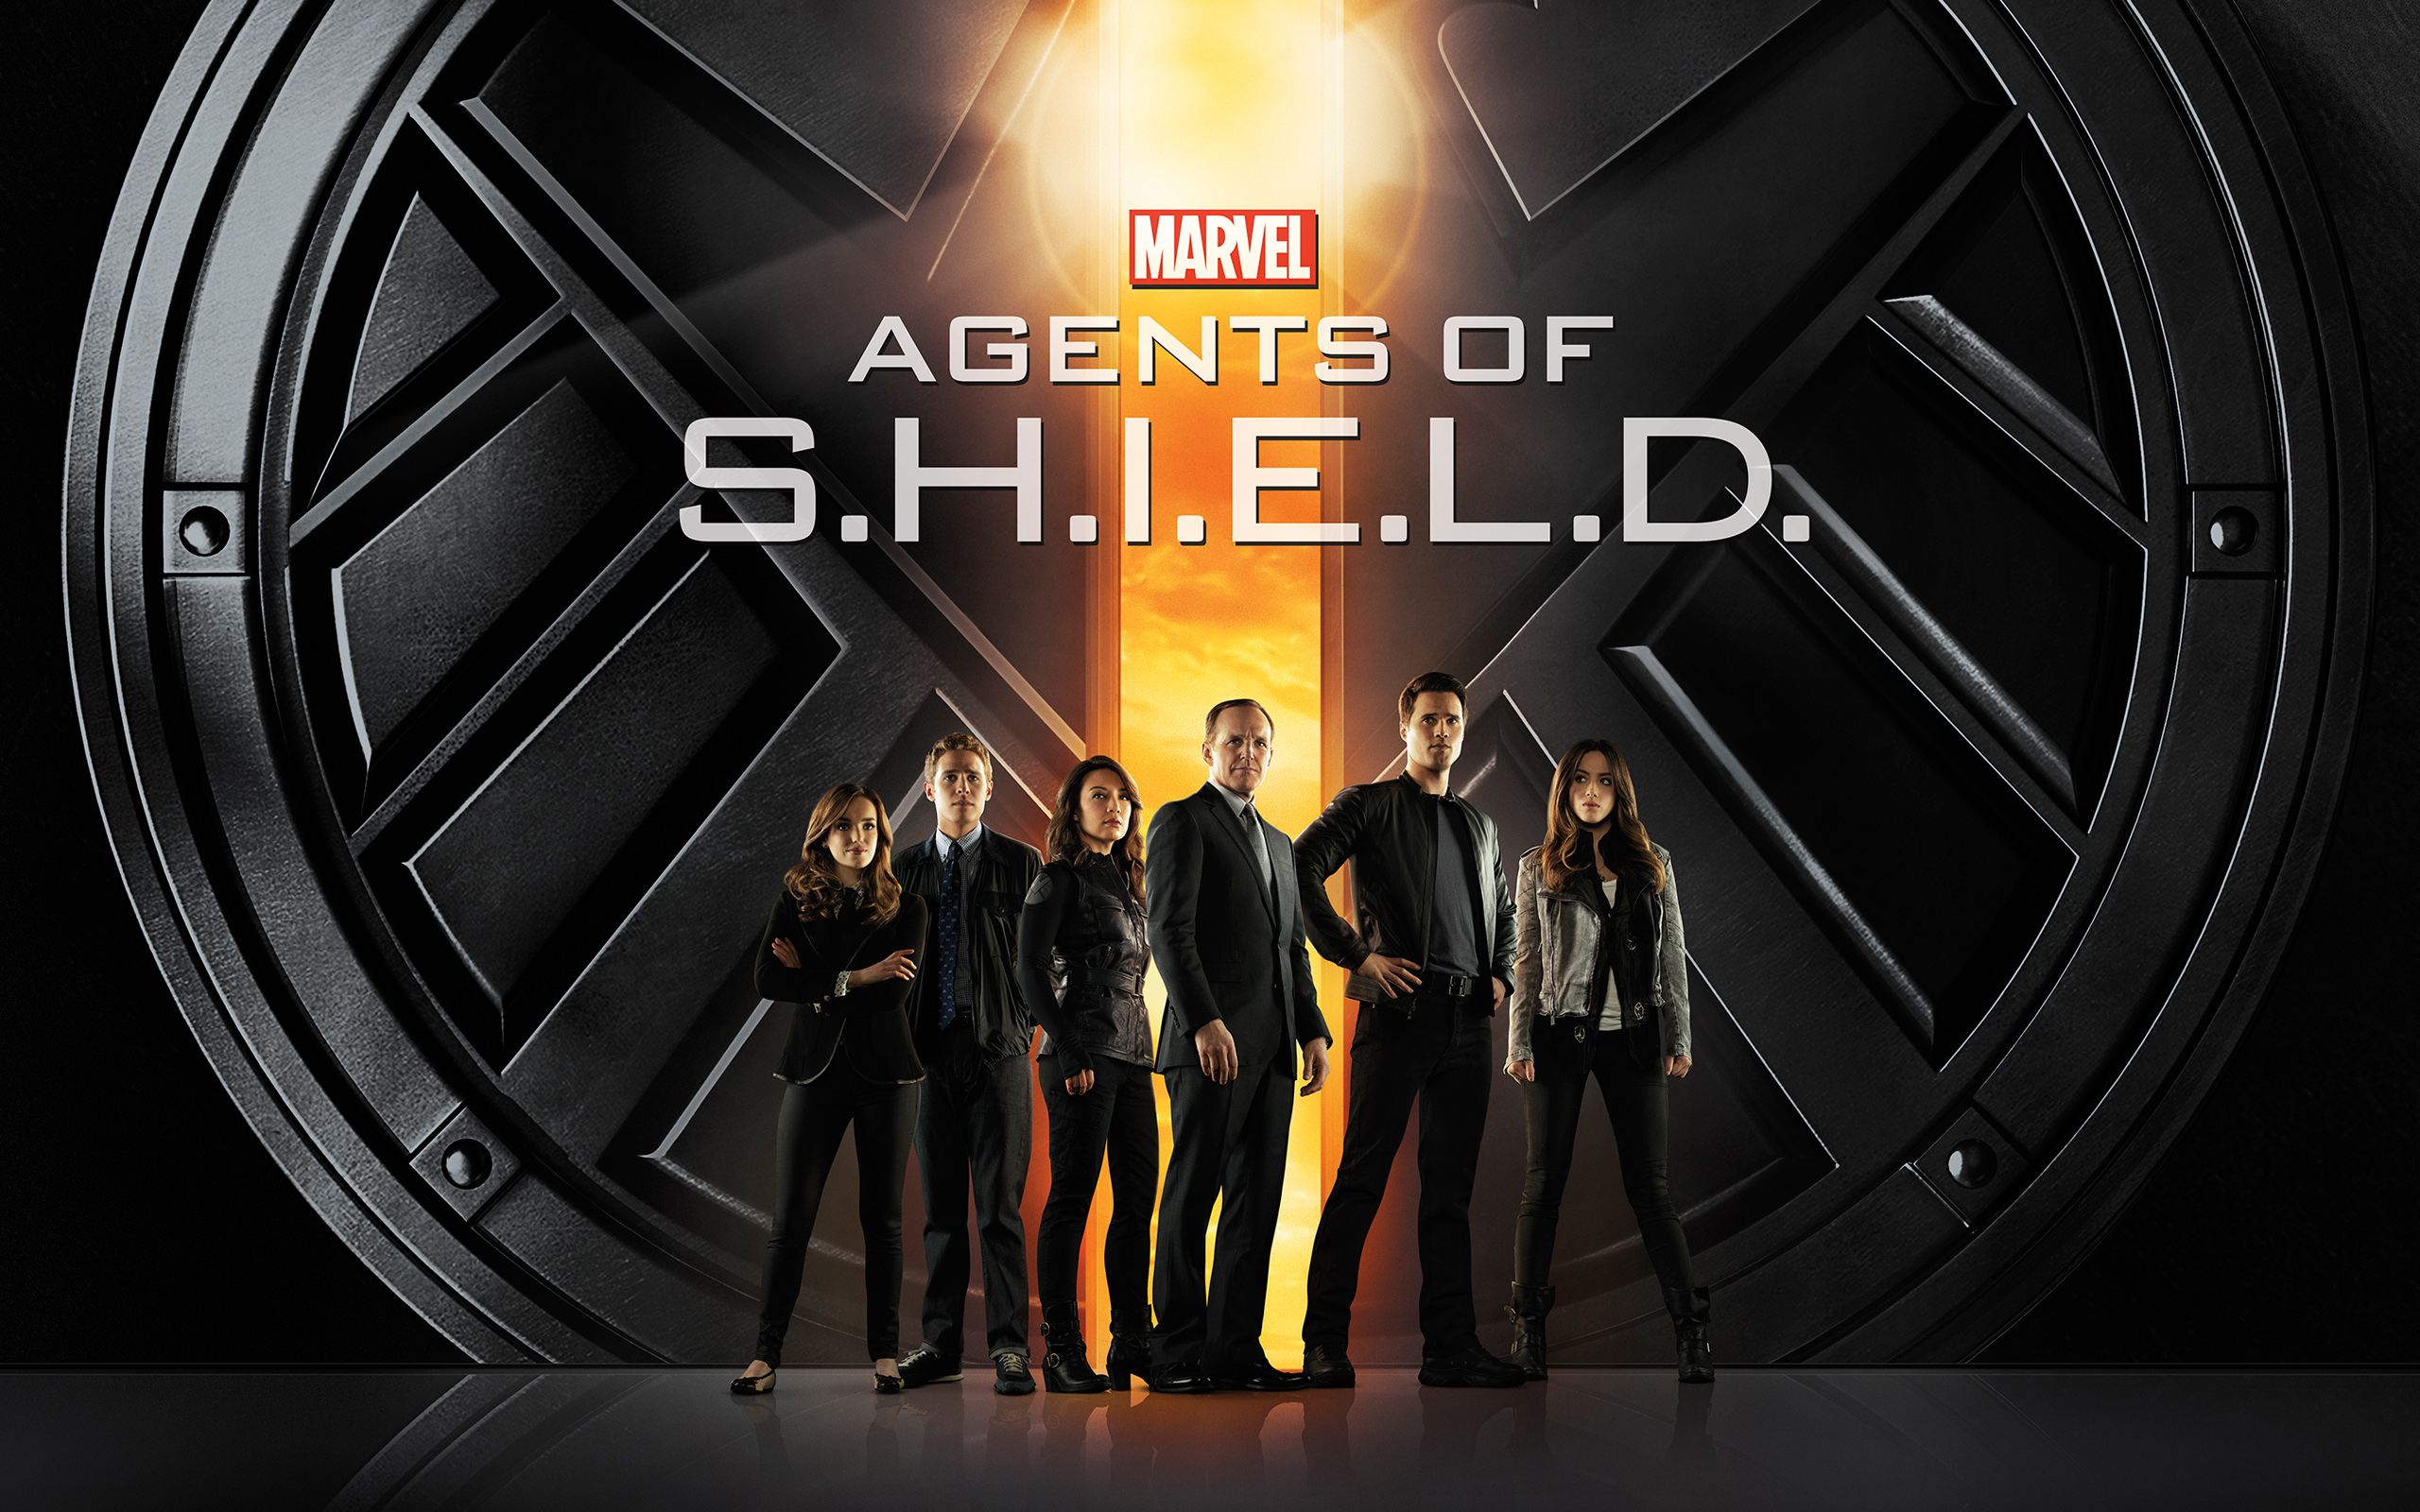 Agents of Shield A1 videothek